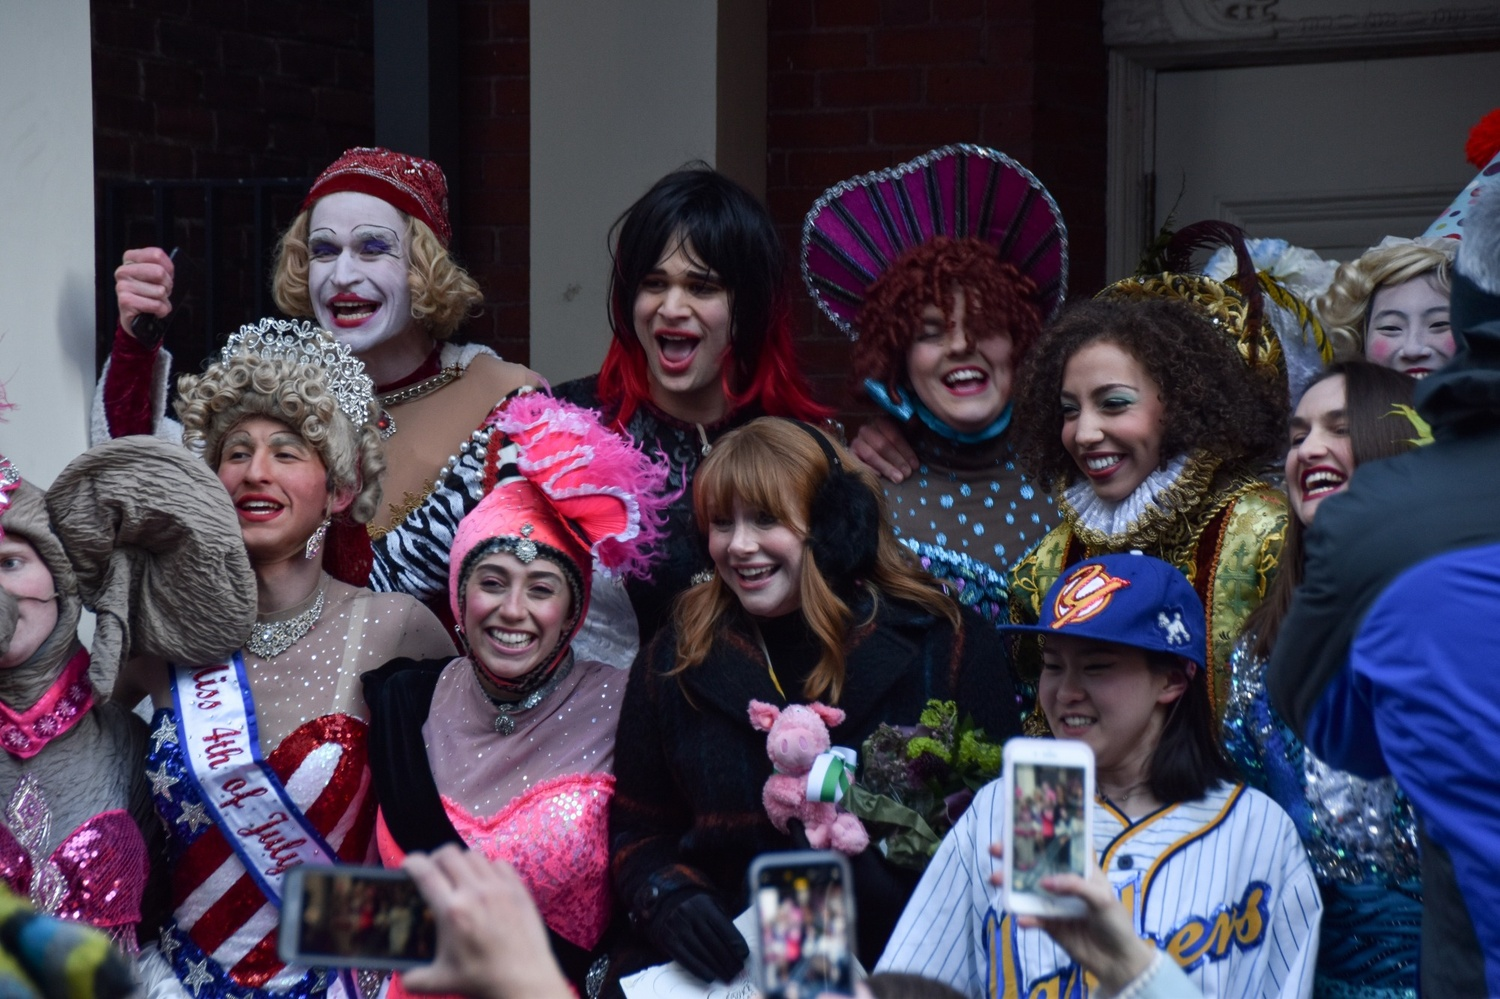 The Hasty Pudding named actor Bryce Dallas Howard as their 68th Woman of the Year. Howard paraded down Massachusetts Avenue Thursday alongside the Pudding's first mixed-gender cast since it began putting on an annual production in 1844.